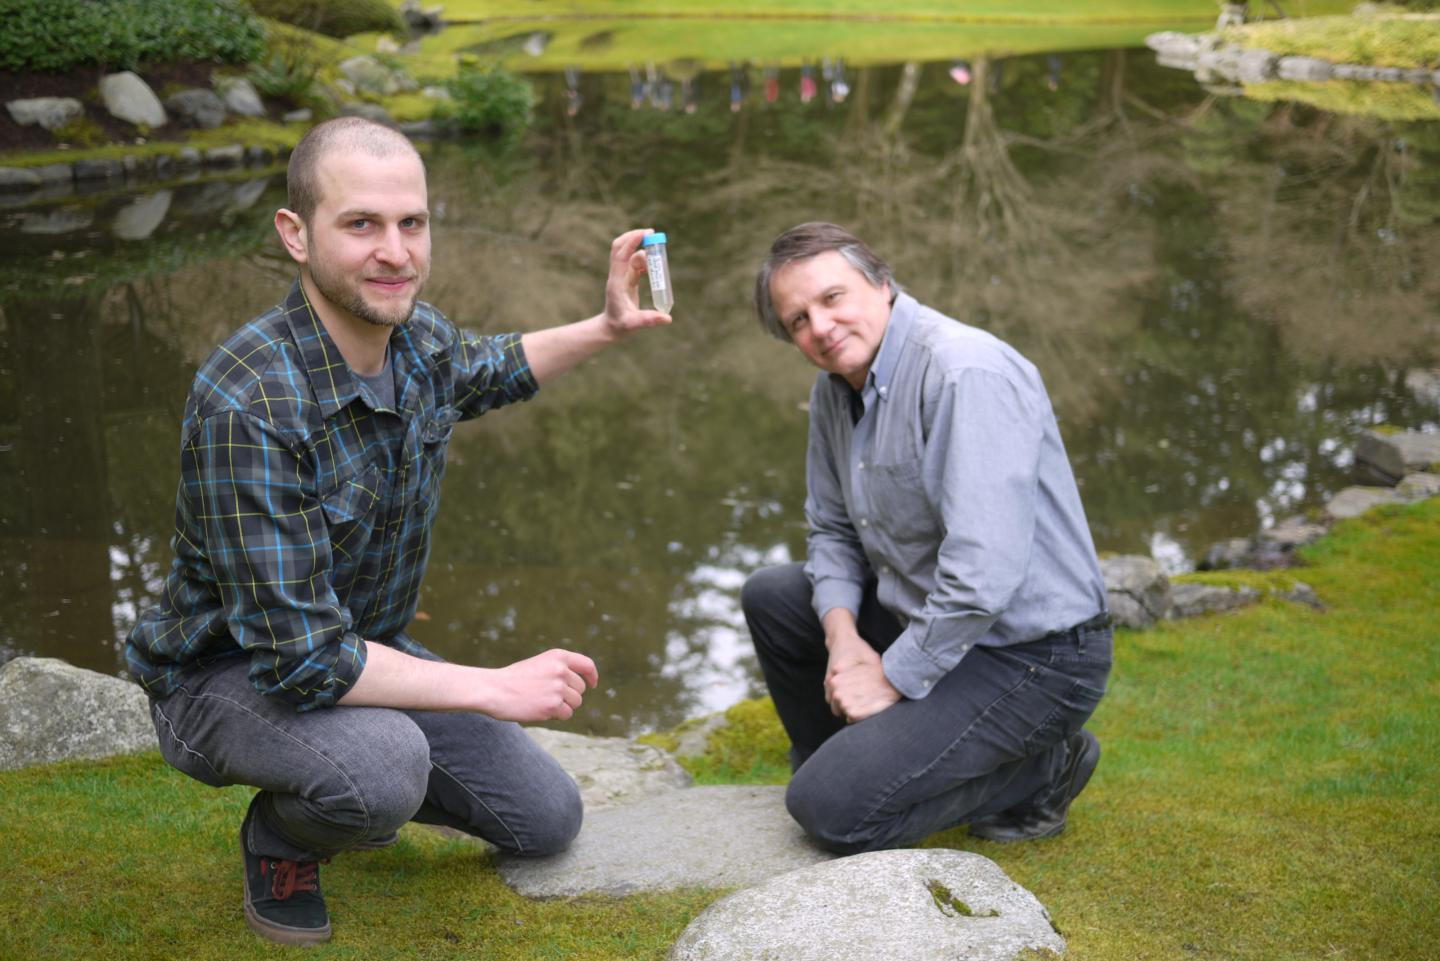 Christoph Deeg and Curtis Suttle isolated Bodo saltans virus in samples from UBC's Nitobe Memorial Garden. / Credit: University of British Columbia